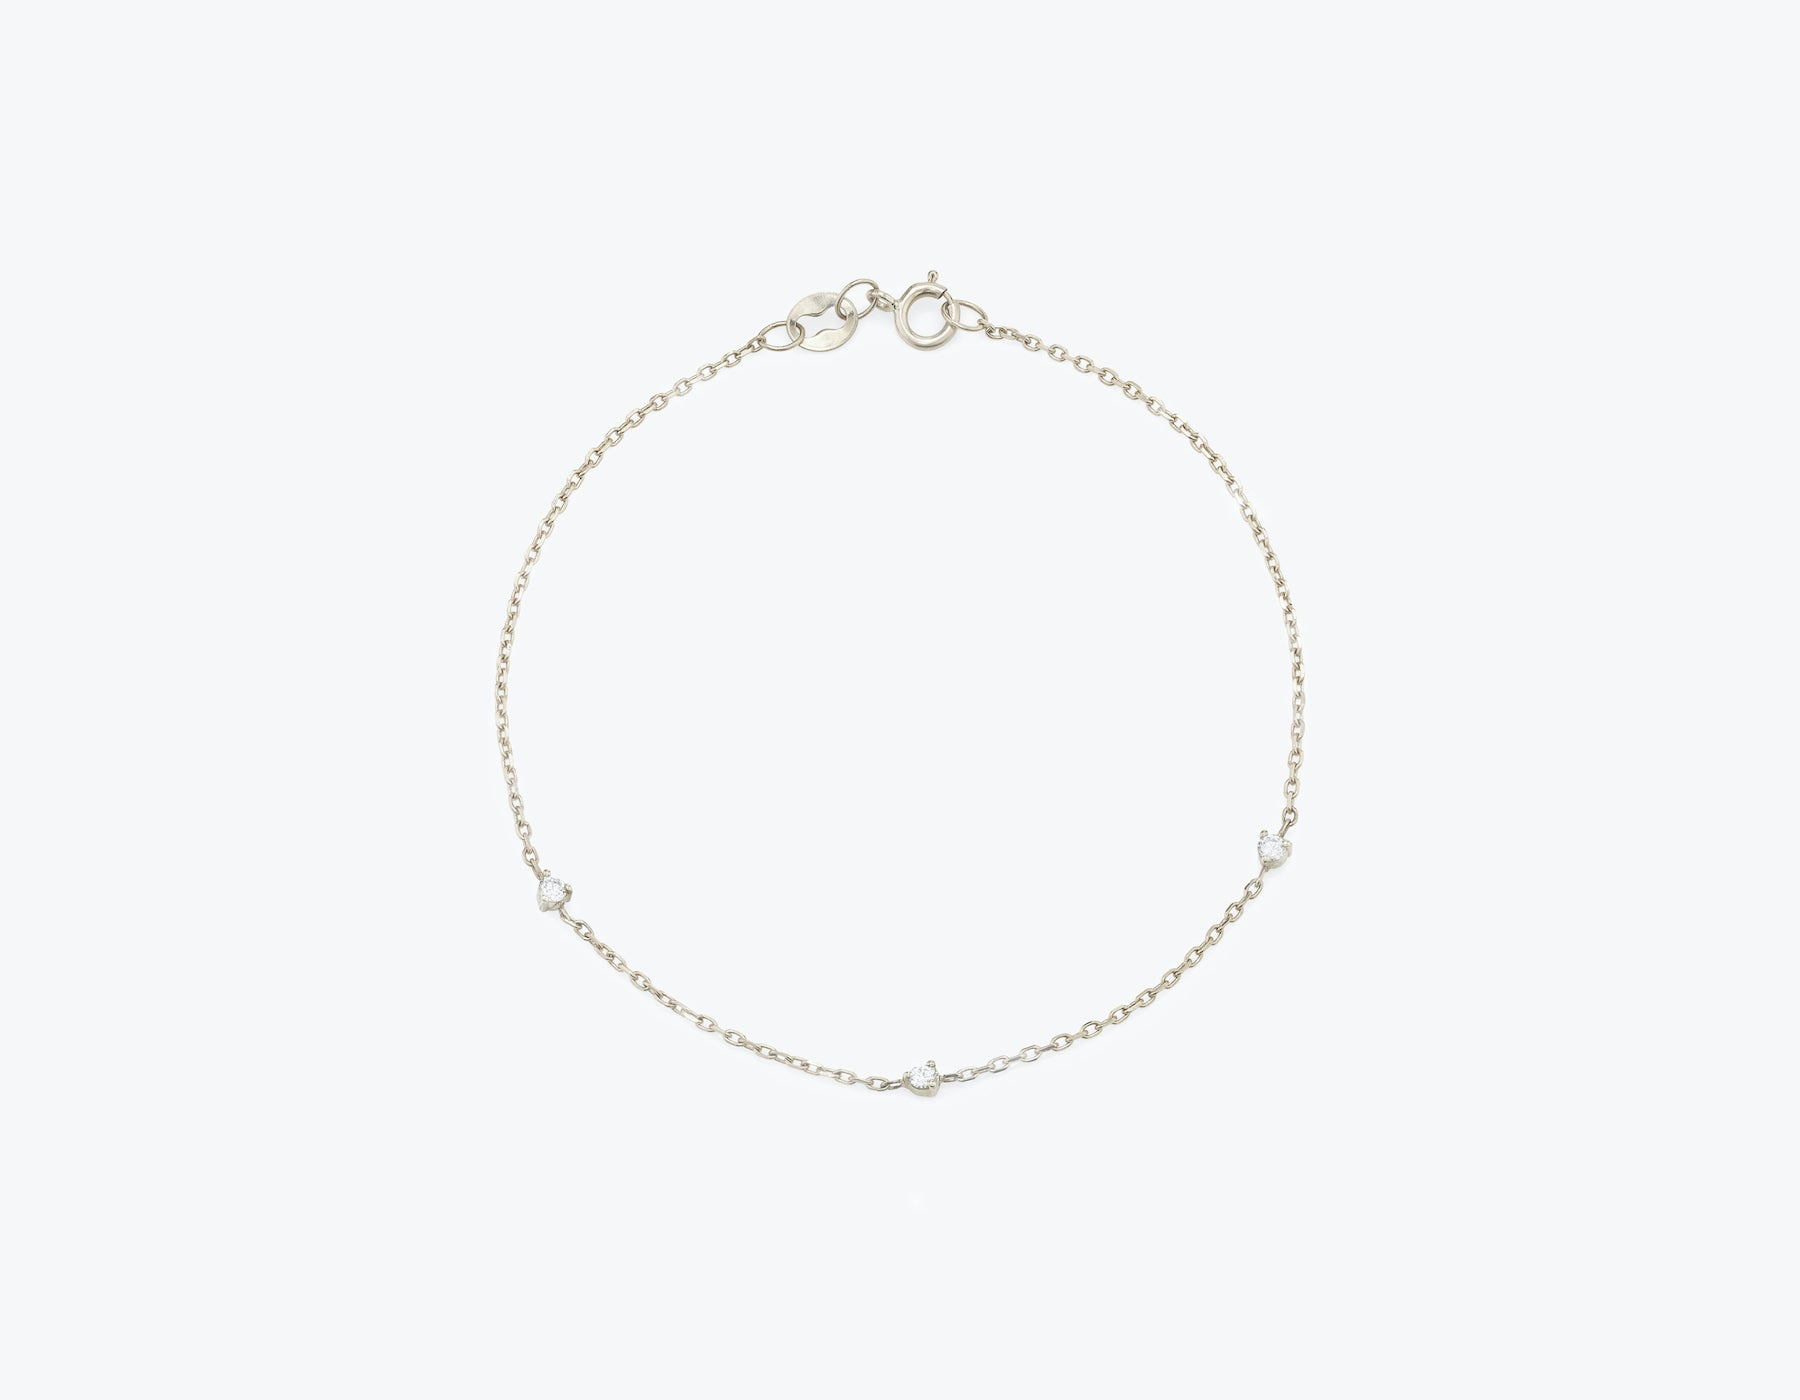 Vrai Tiny Diamond Station Bracelet simple modern, 14K White Gold